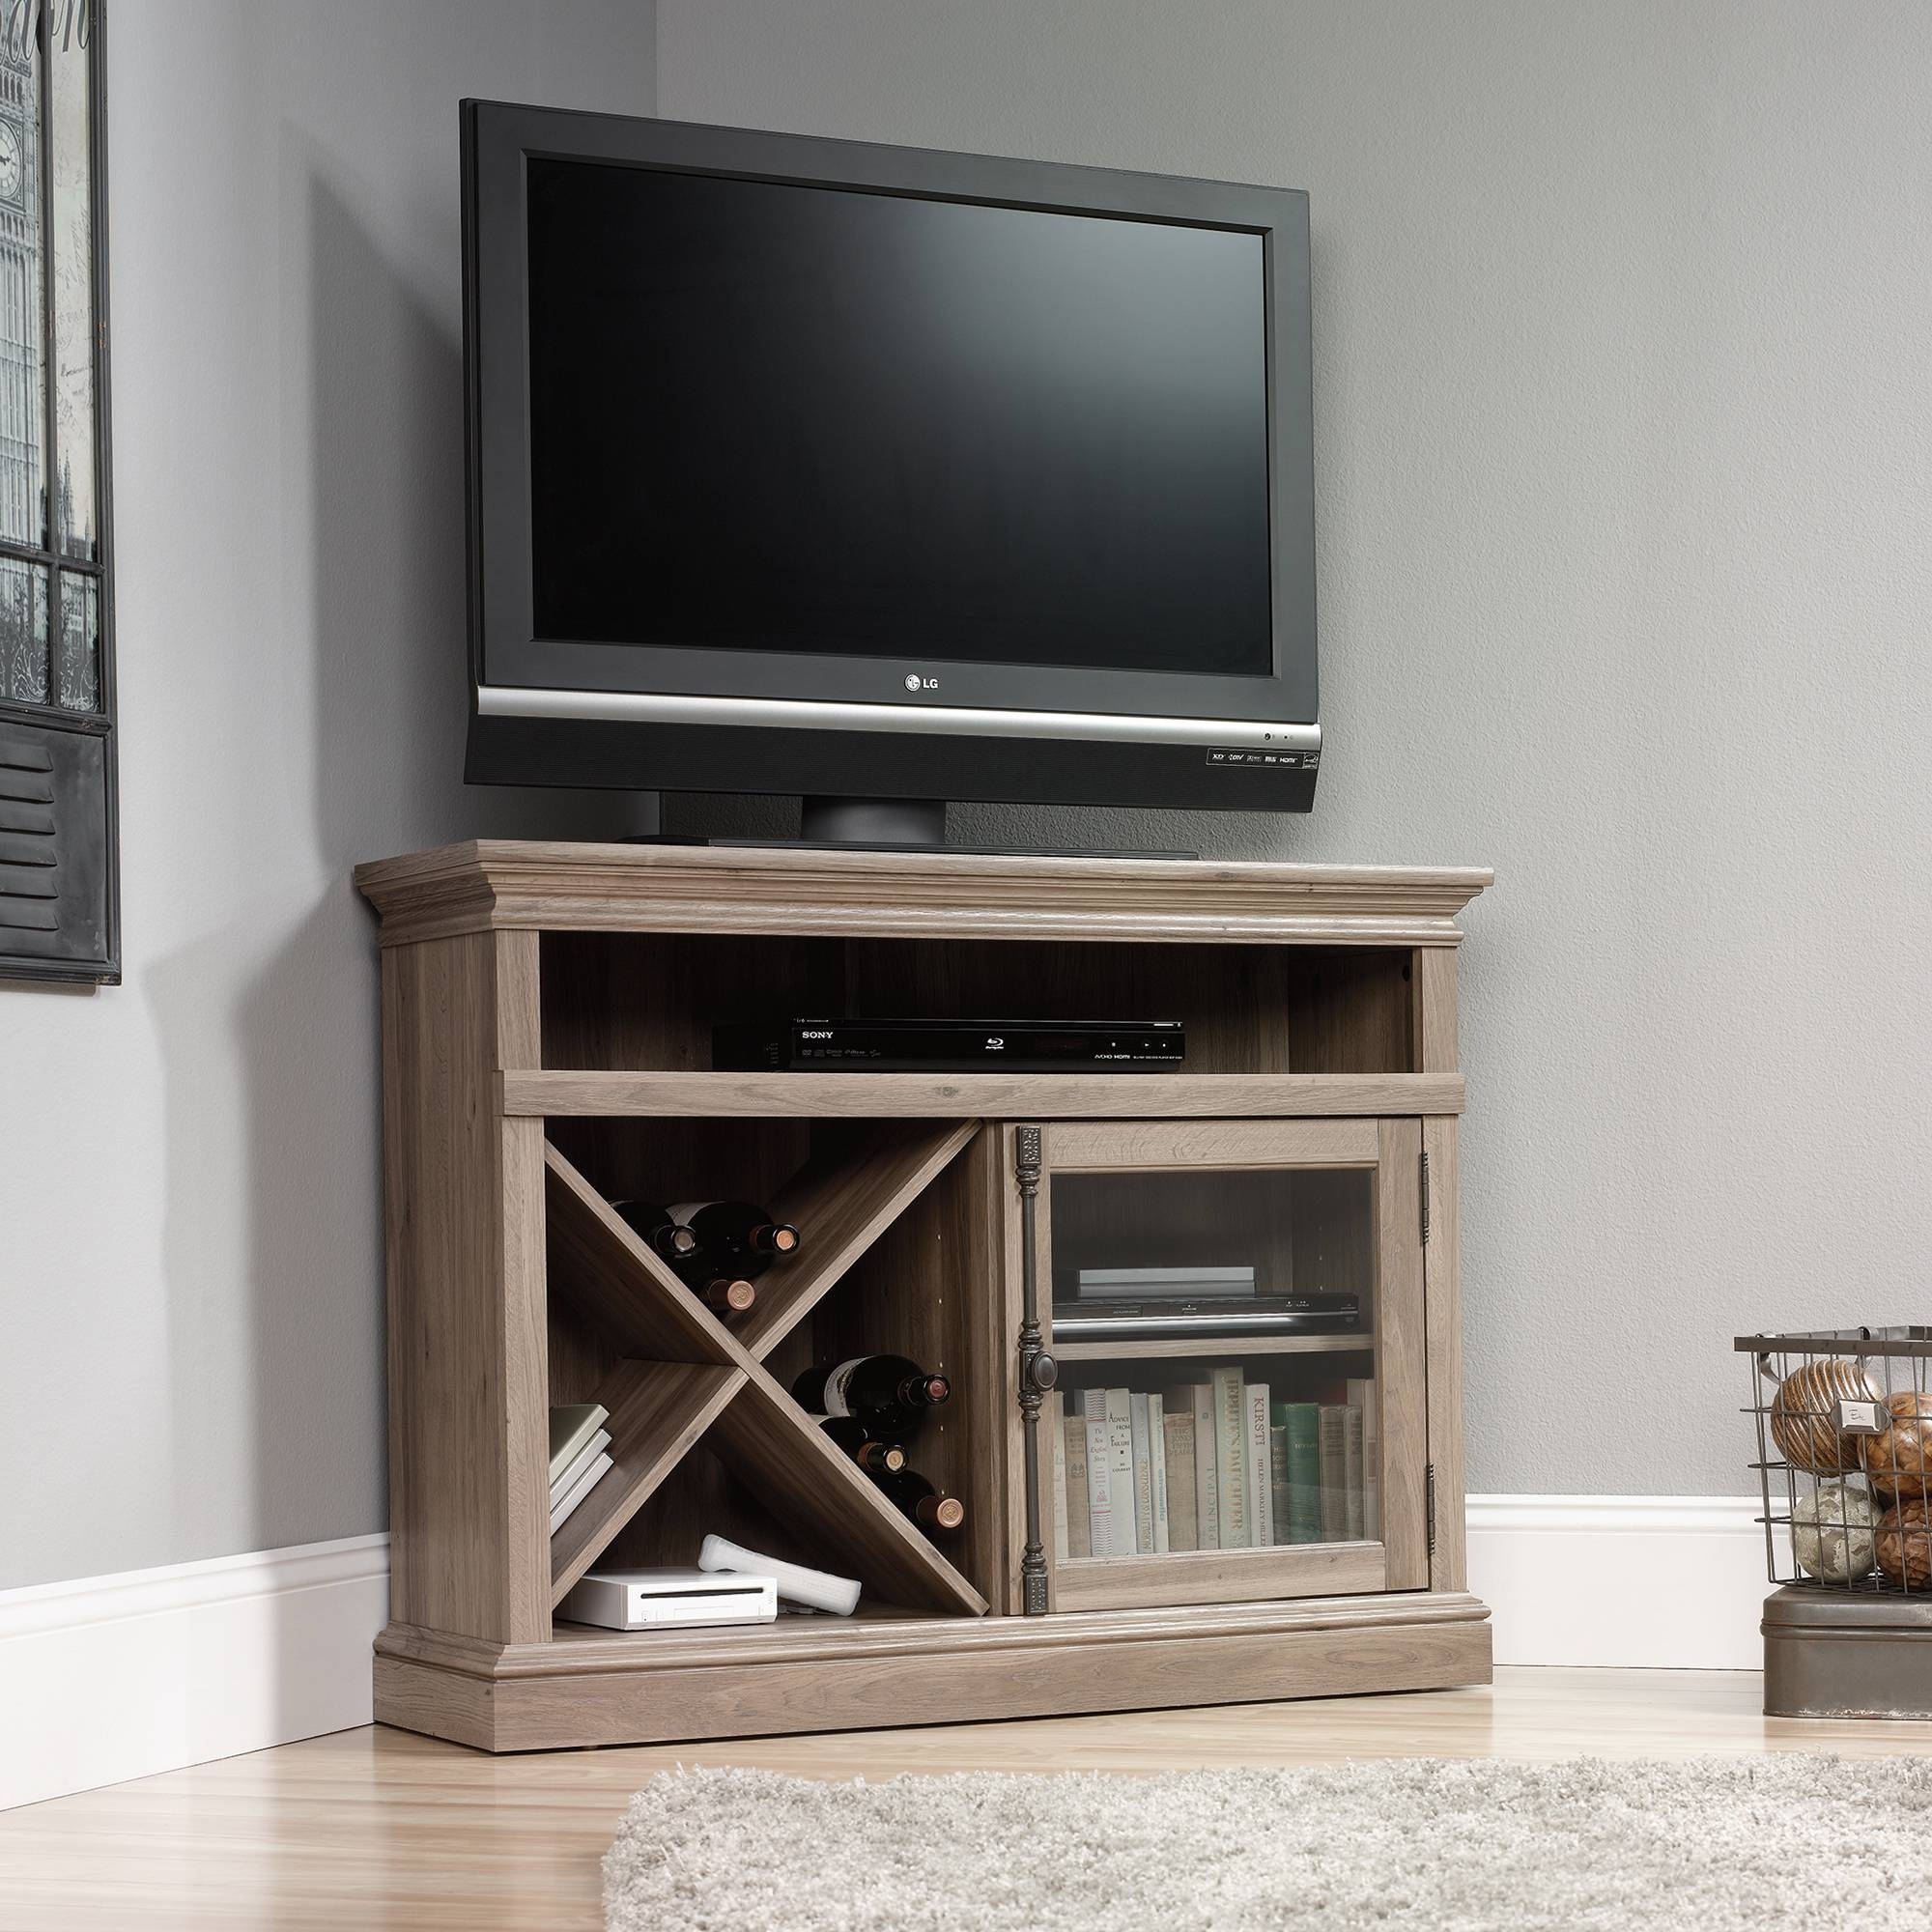 Wooden Corner Tv Stand With Single Glass Cabinet Door And Lattice for Corner Tv Unit With Glass Doors (Image 15 of 15)